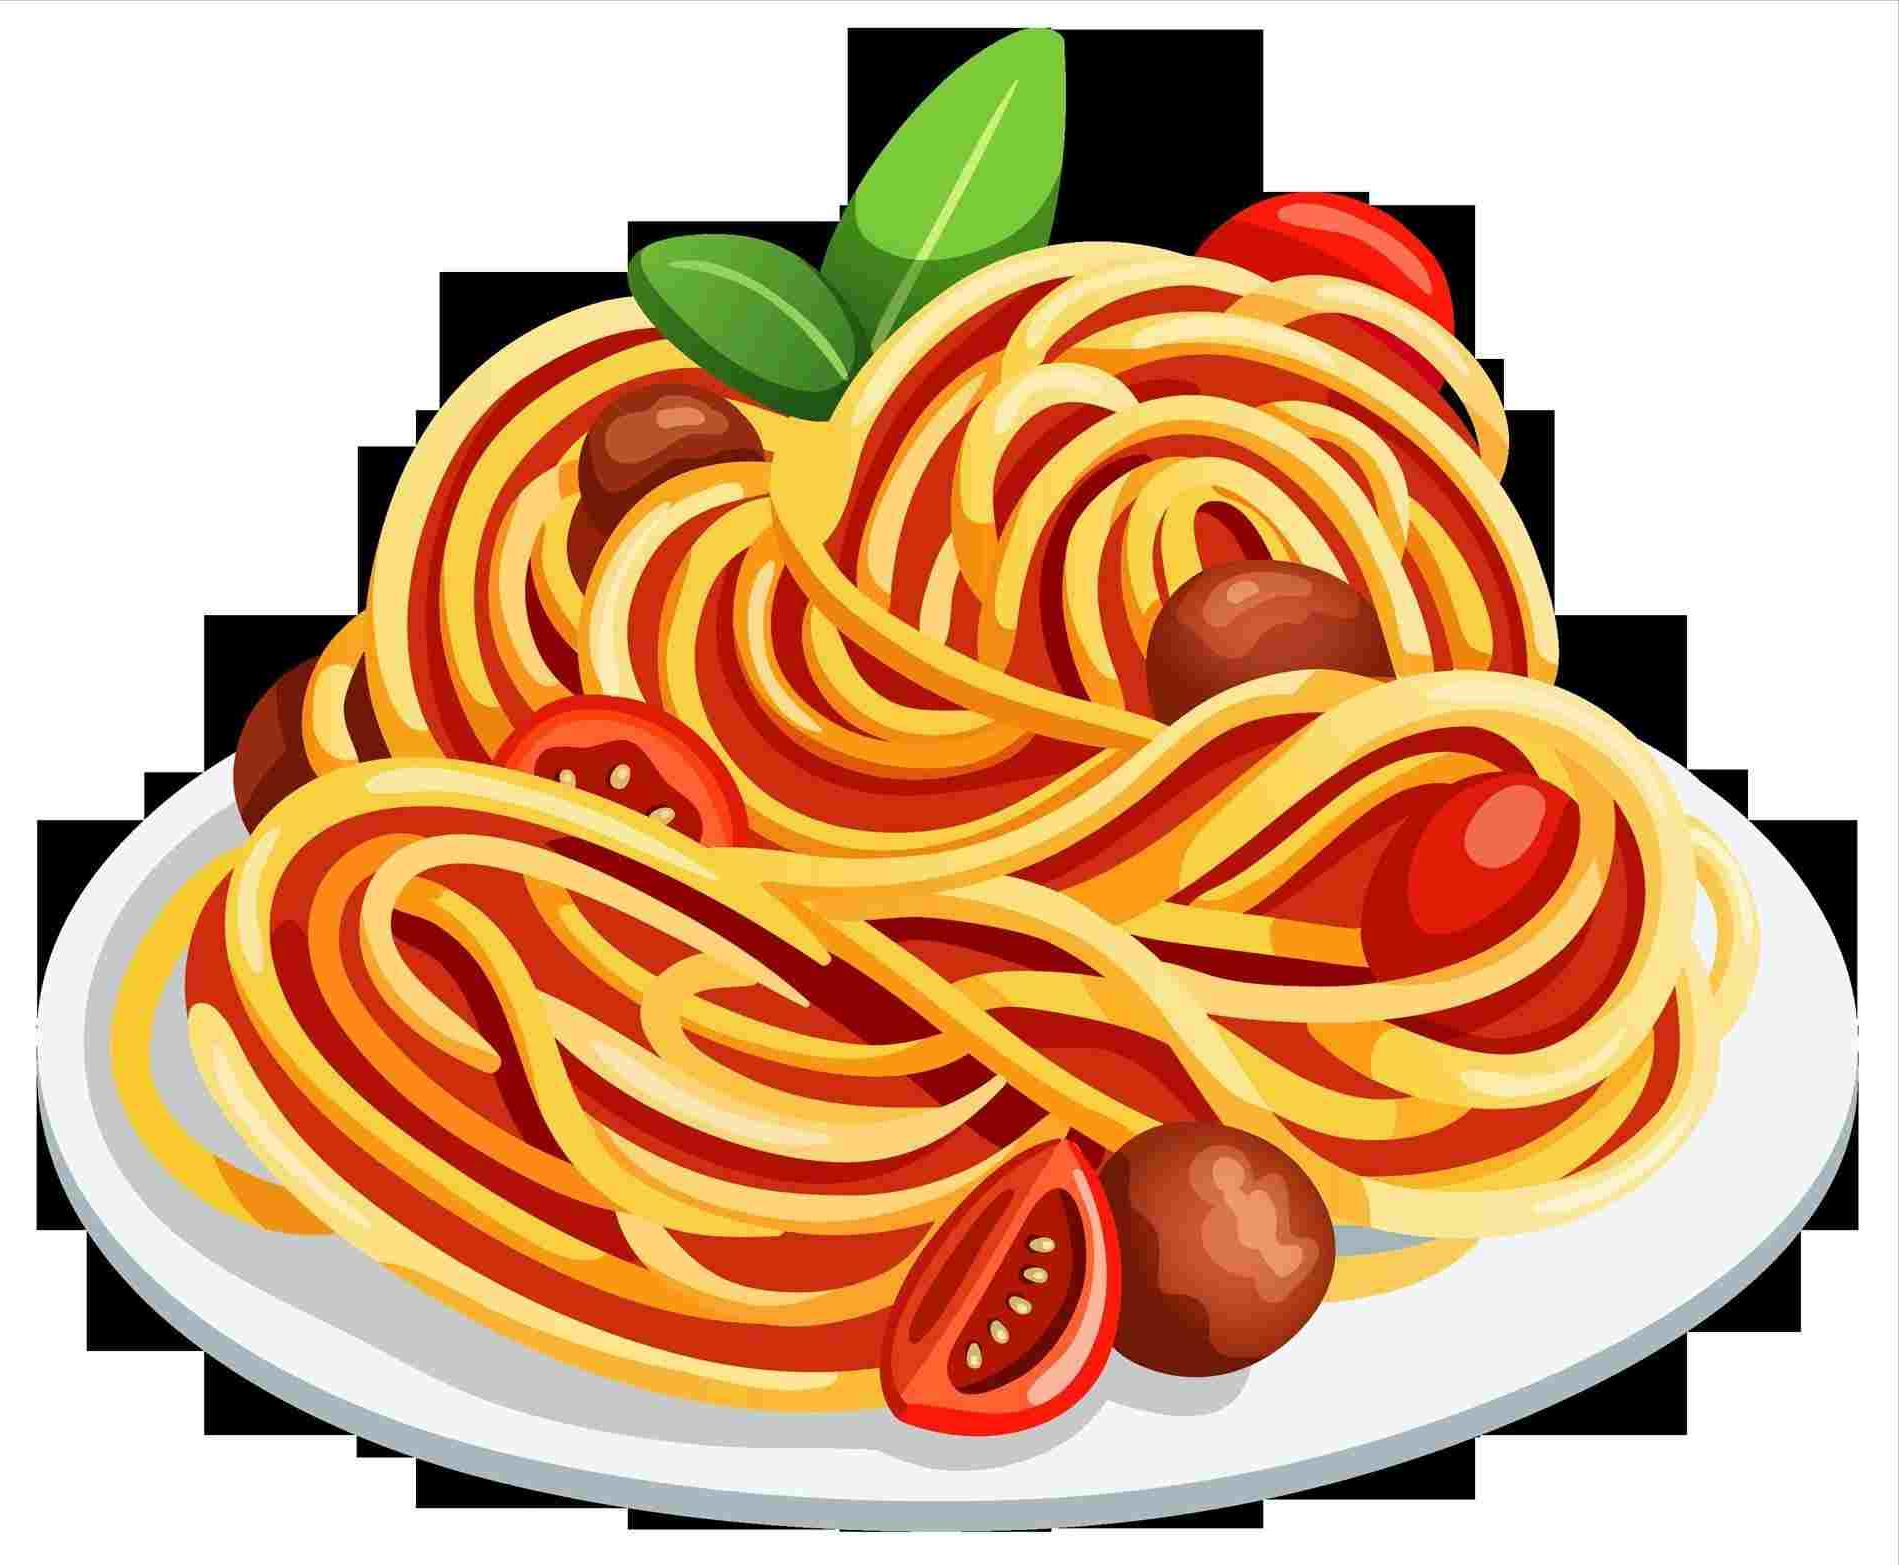 Spaghetti bowl clipart image library stock Best Bowl Of Spaghetti Clip Art Library » Vector Images Design image library stock